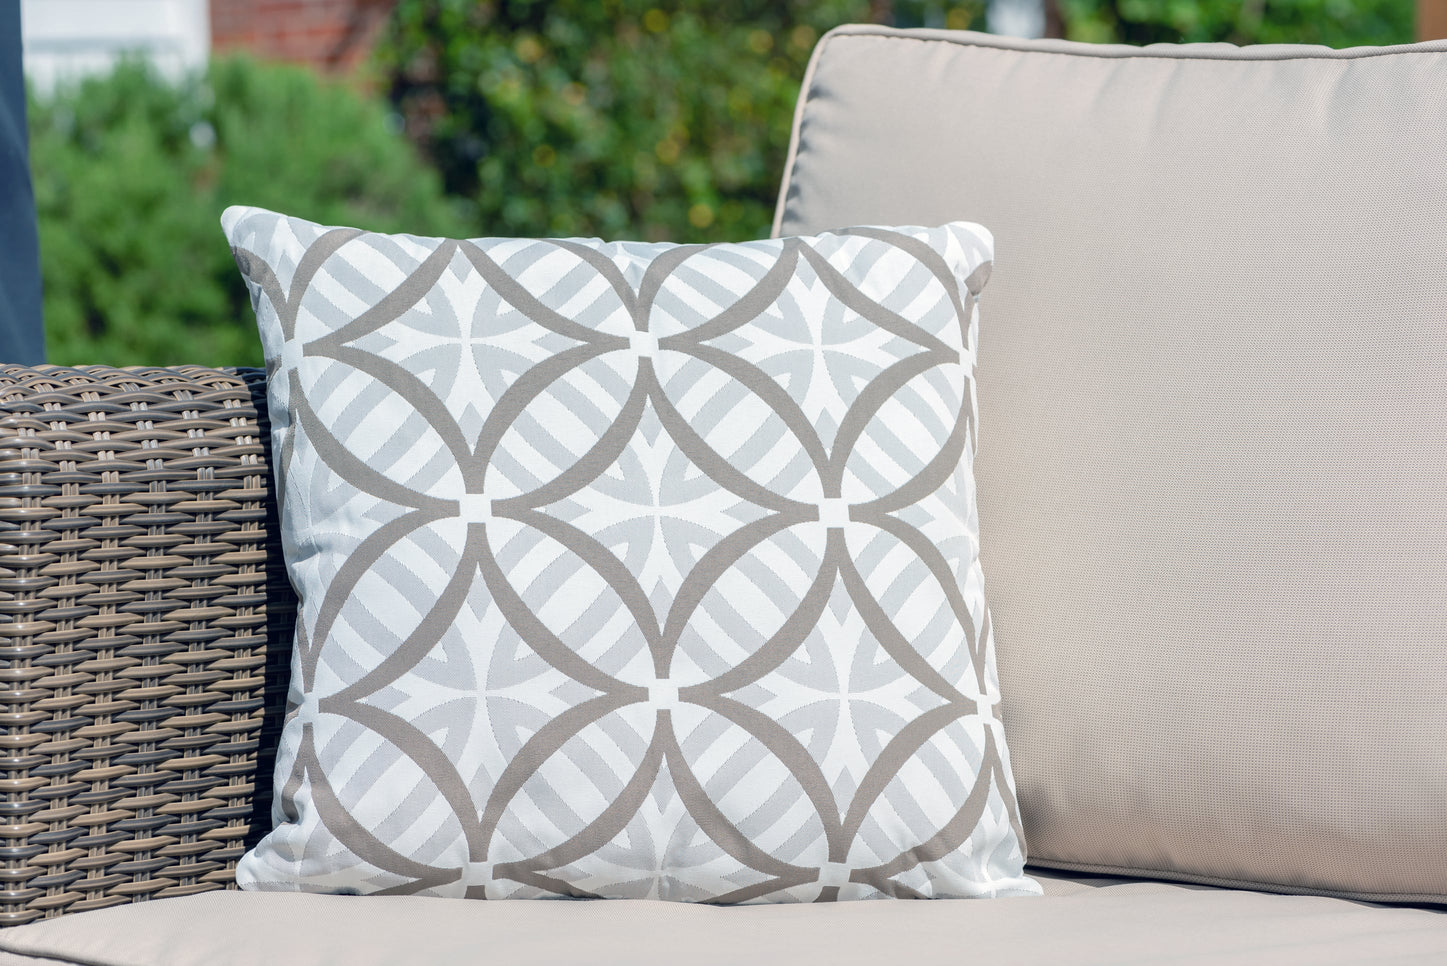 Armadillo Sun luxury waterproof cushion in neutral pumice and white palm pattern